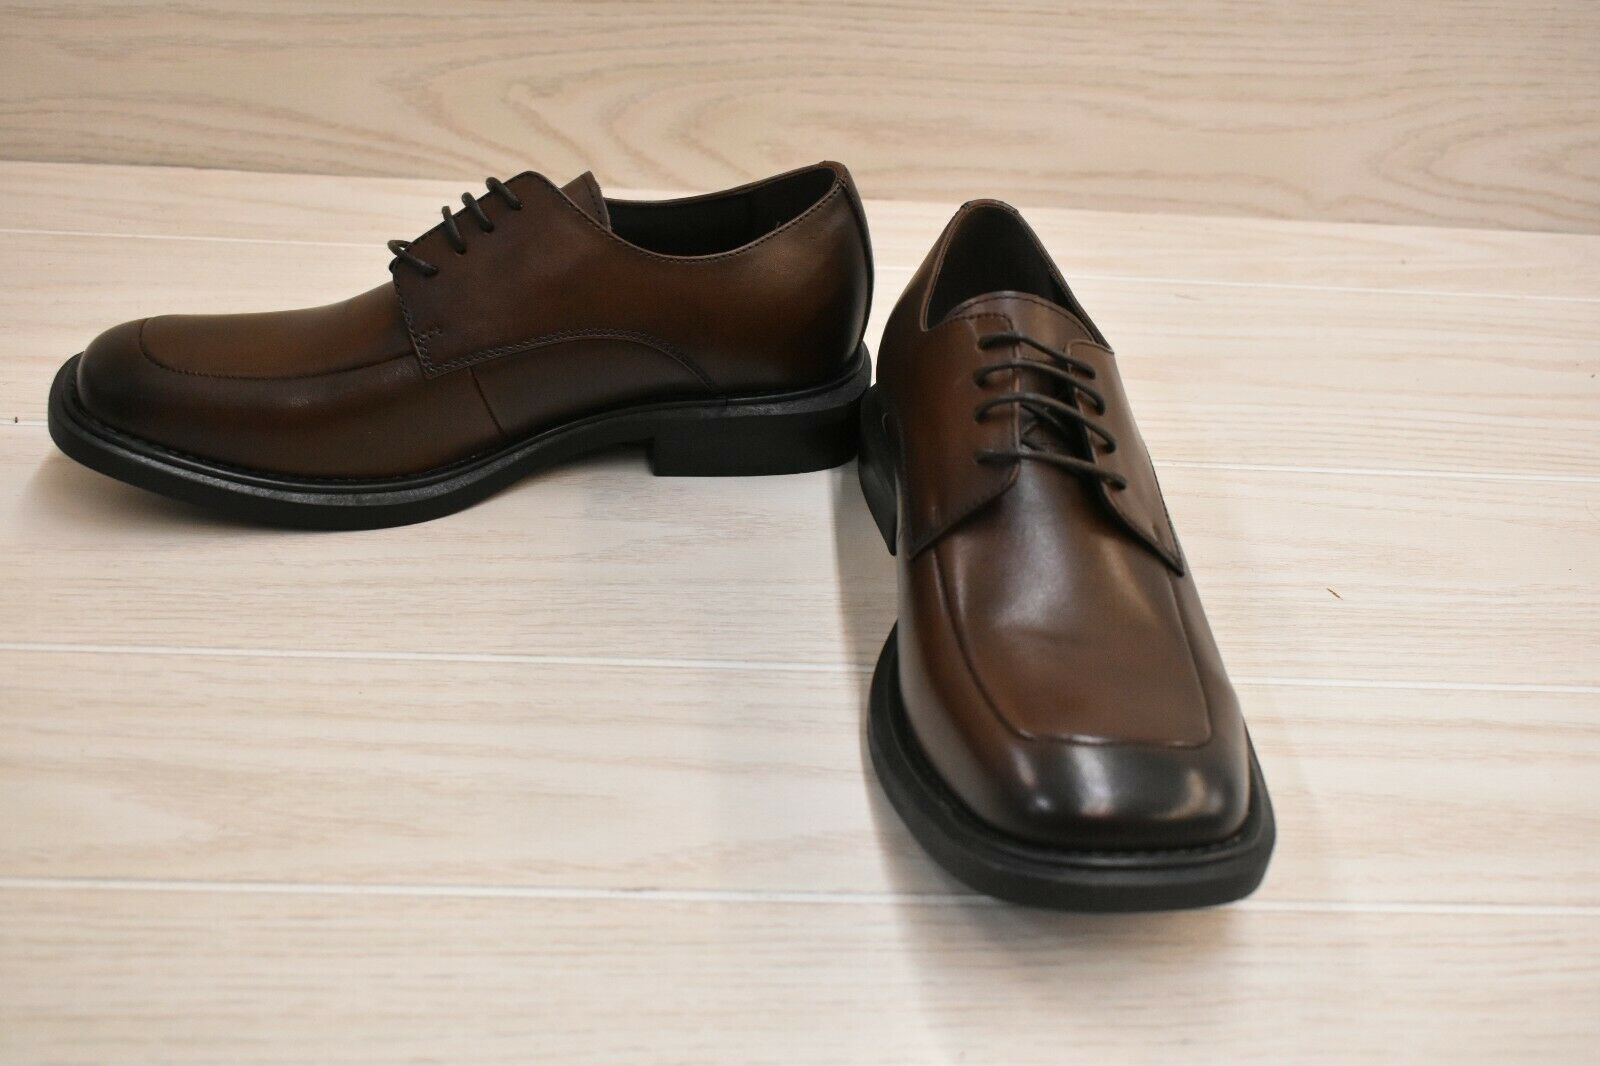 Kenneth Cole New York Merge Dress Oxford - Men's Size 8, Brown NEW